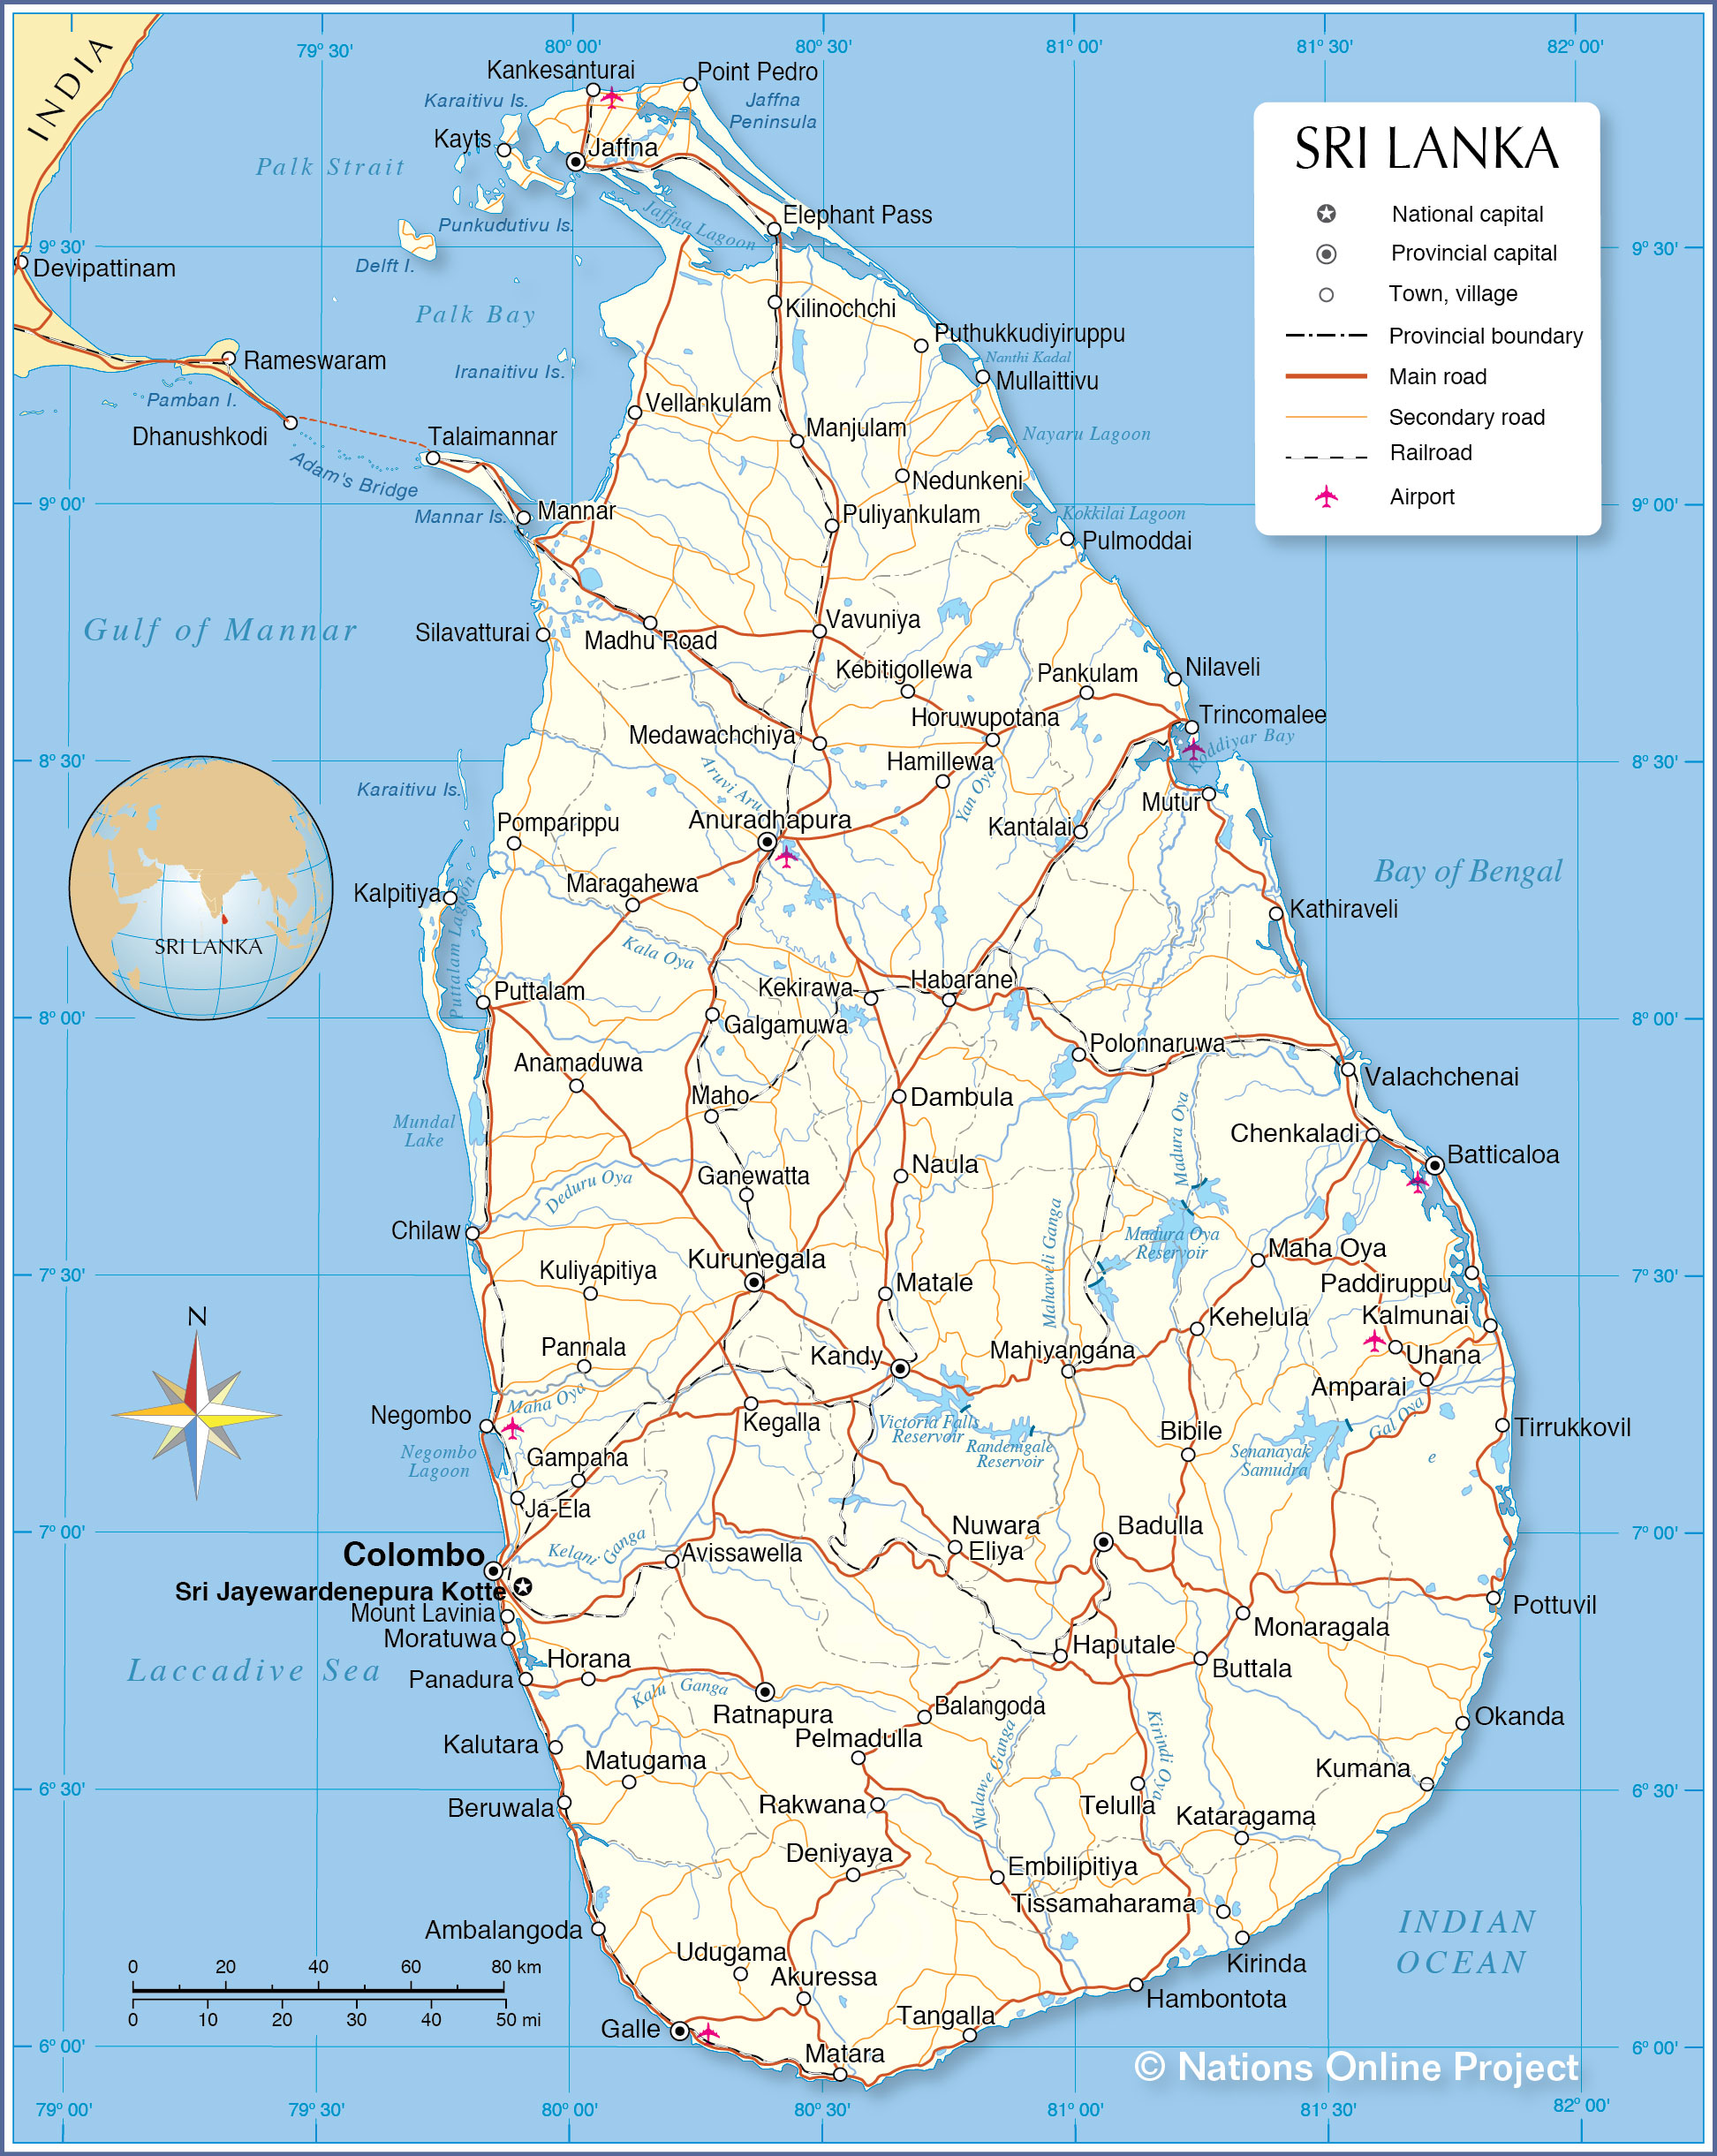 Political Map of Sri Lanka - Nations Online Project on map of nhava sheva india, map of ahmedabad india, map of budapest india, map of jaffna india, map of bangalore india, map of kabul india, map of delhi india, map of chennai india, map of bay of bengal india, map of cochin india, map of gujarat state india, map of dhaka india, map of kathmandu india, map of qatar india, map of thimphu india, map of asia india, map of kolkata india, map of hyderabad india, map of dubai india, map of bombay india,